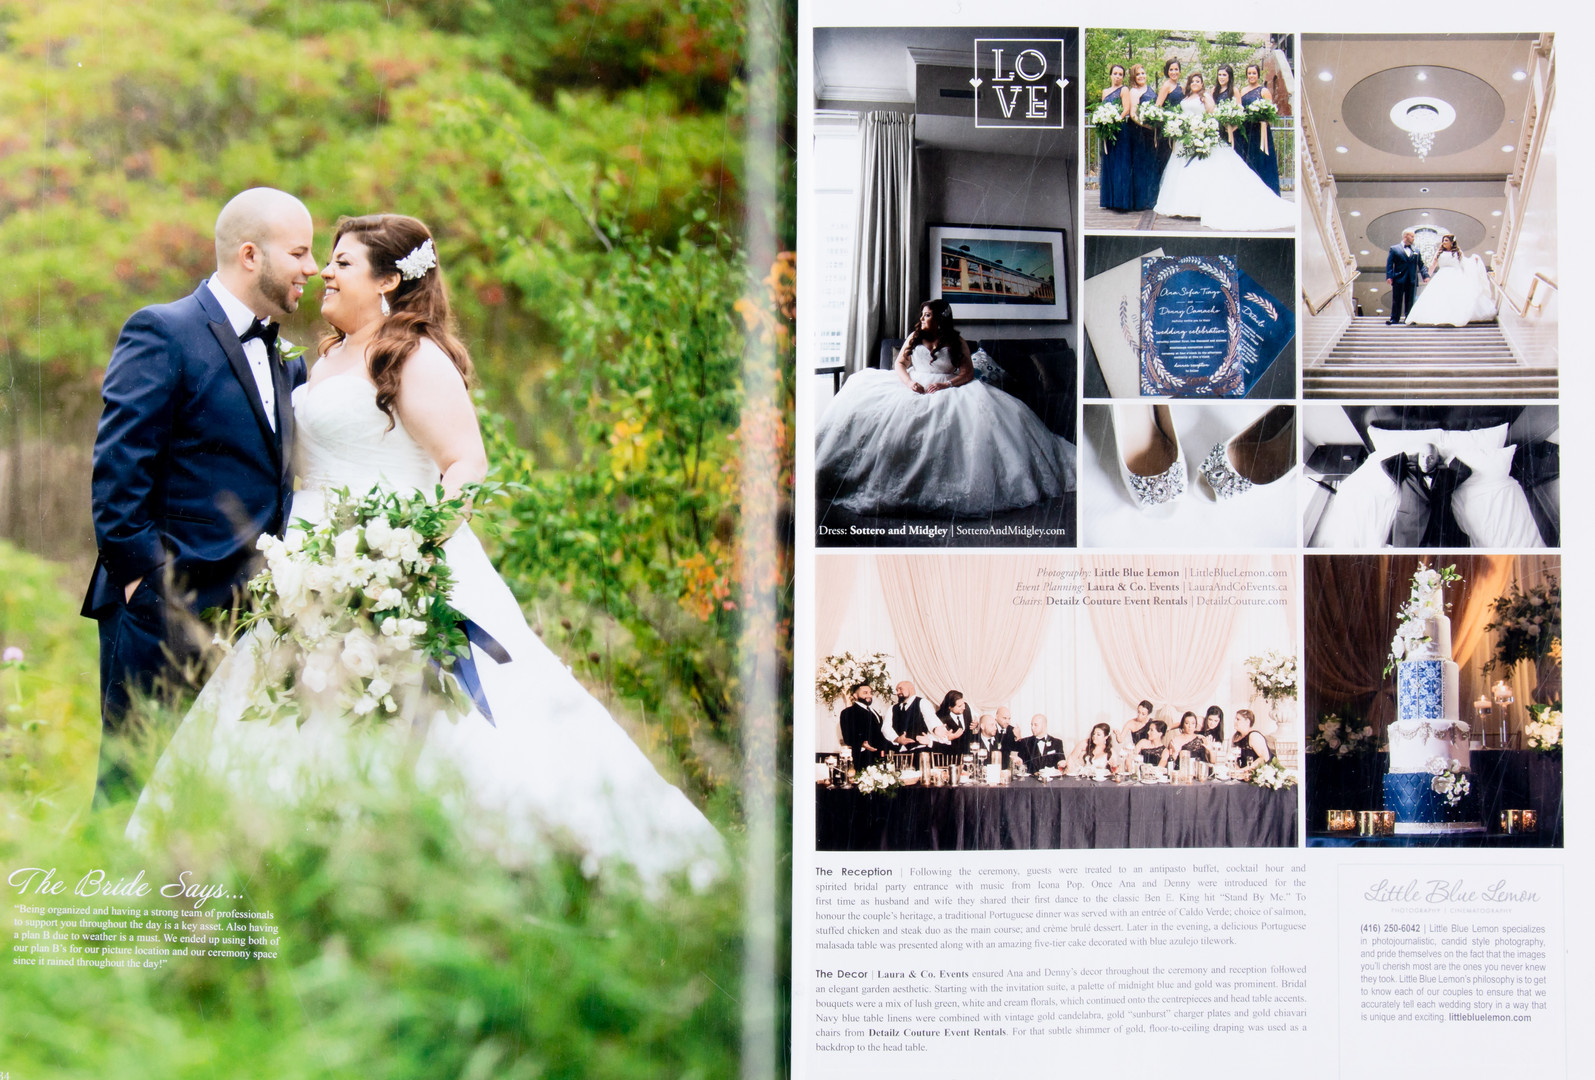 Top Wedding photographers Toronto Little Blue Lemon published images of bride in sottero and midgley